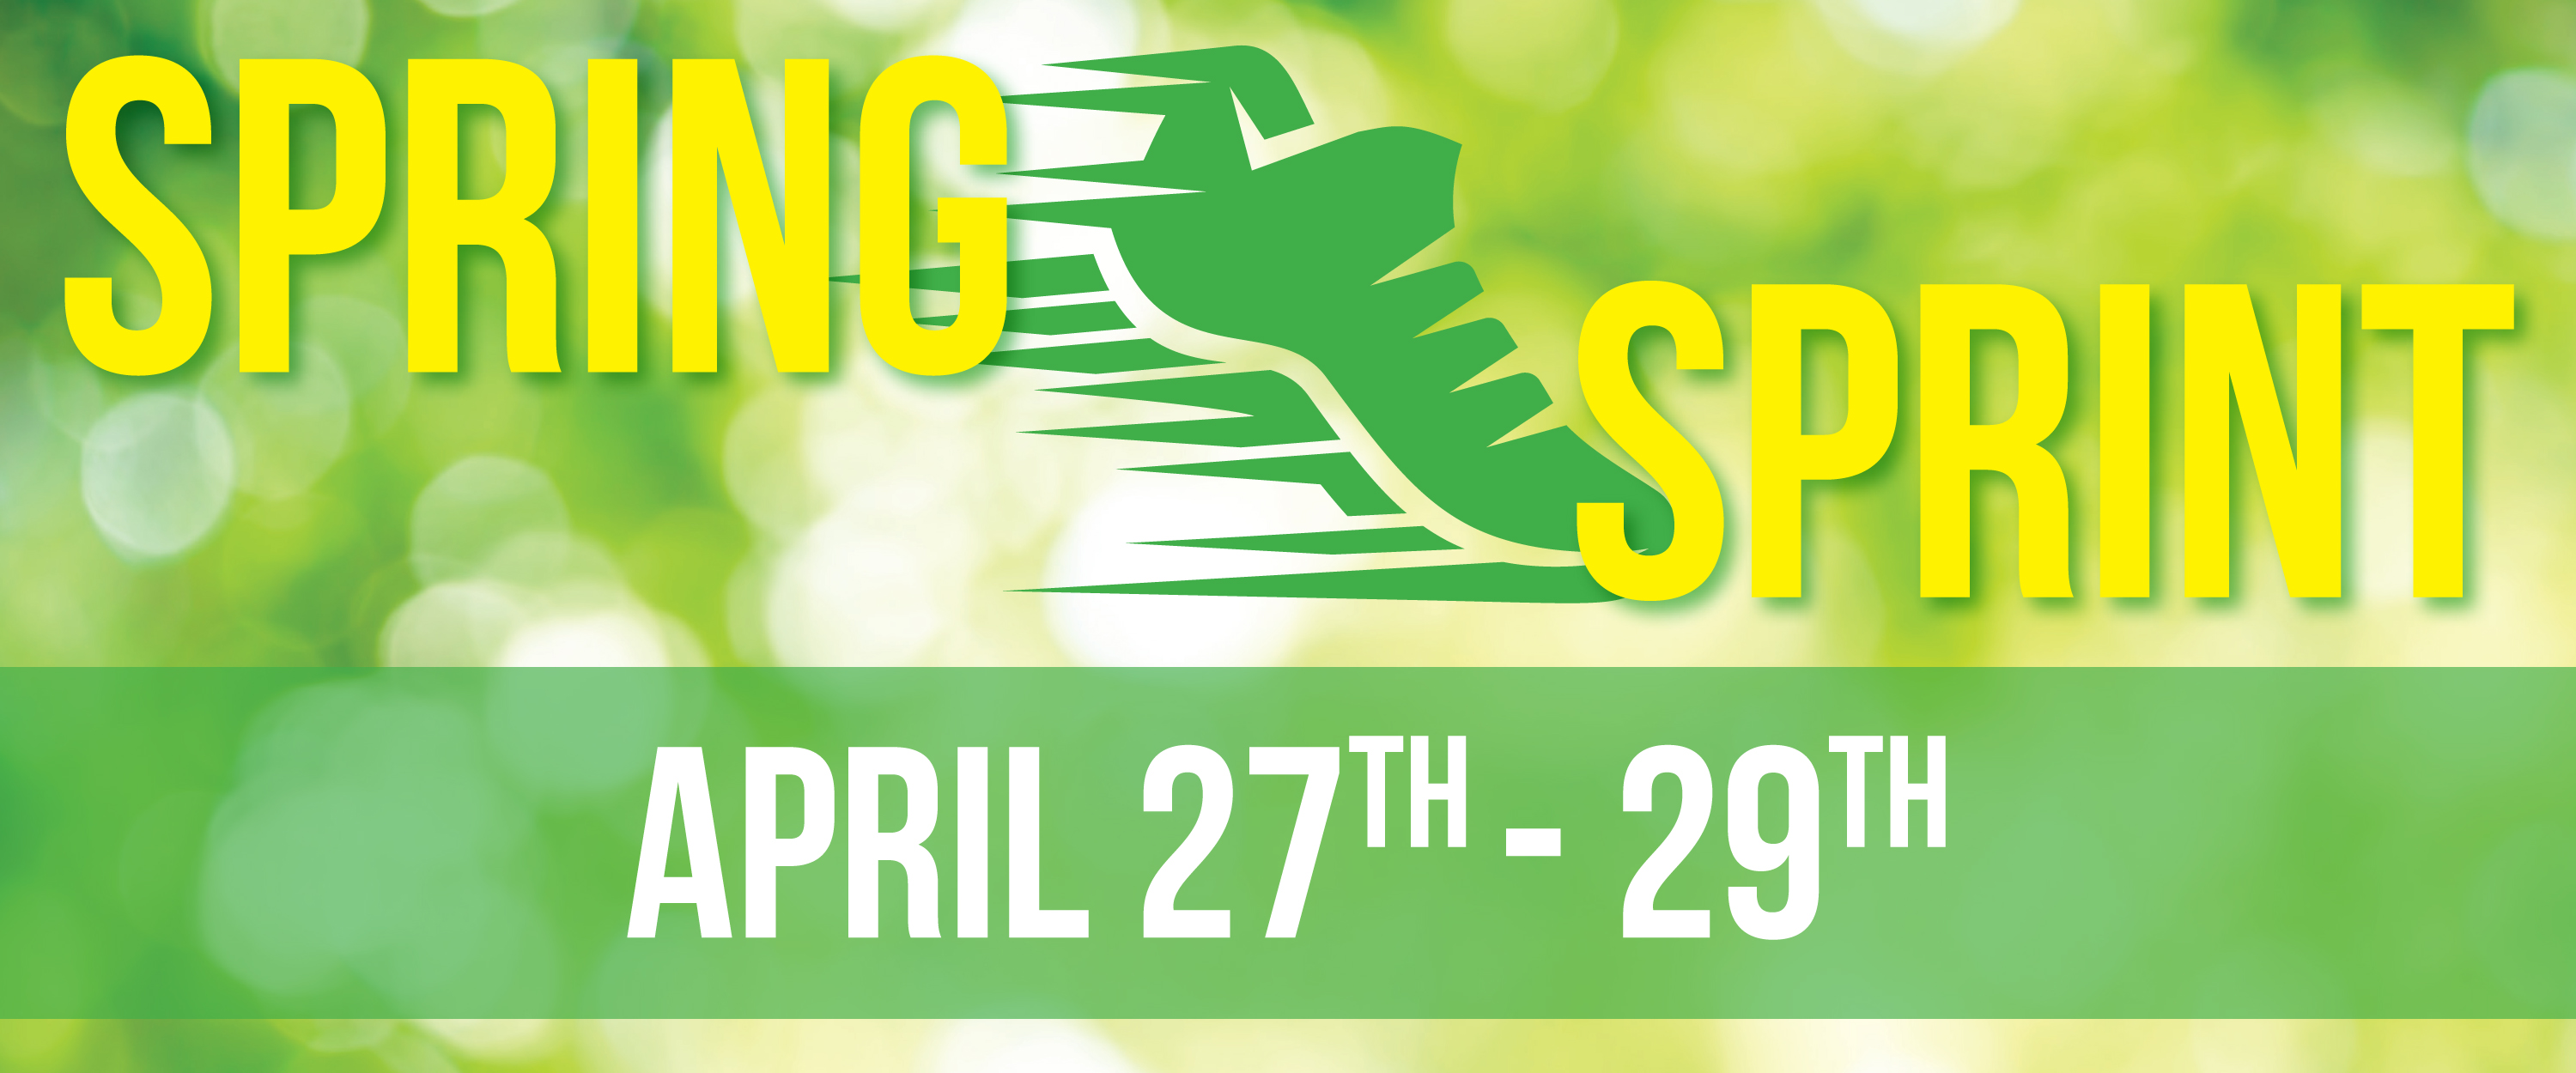 Spring Sprint PROOF – QFM-1